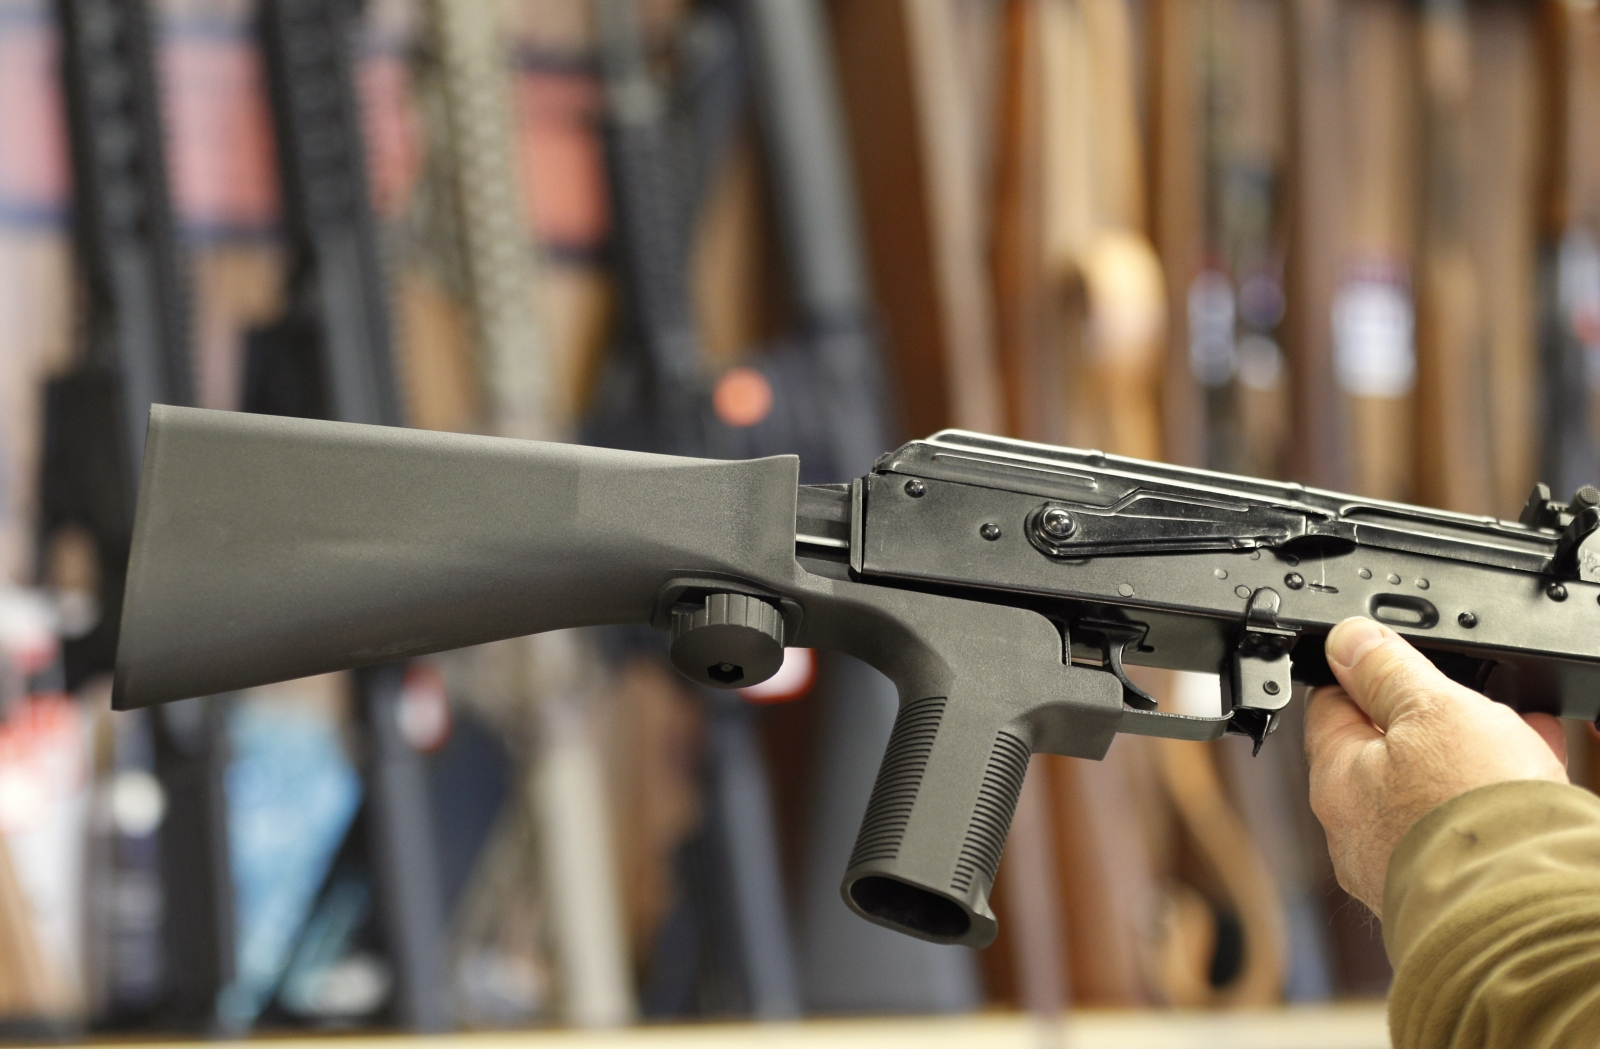 white-house-welcomes-efforts-to-study-gun-bump-stock-devices